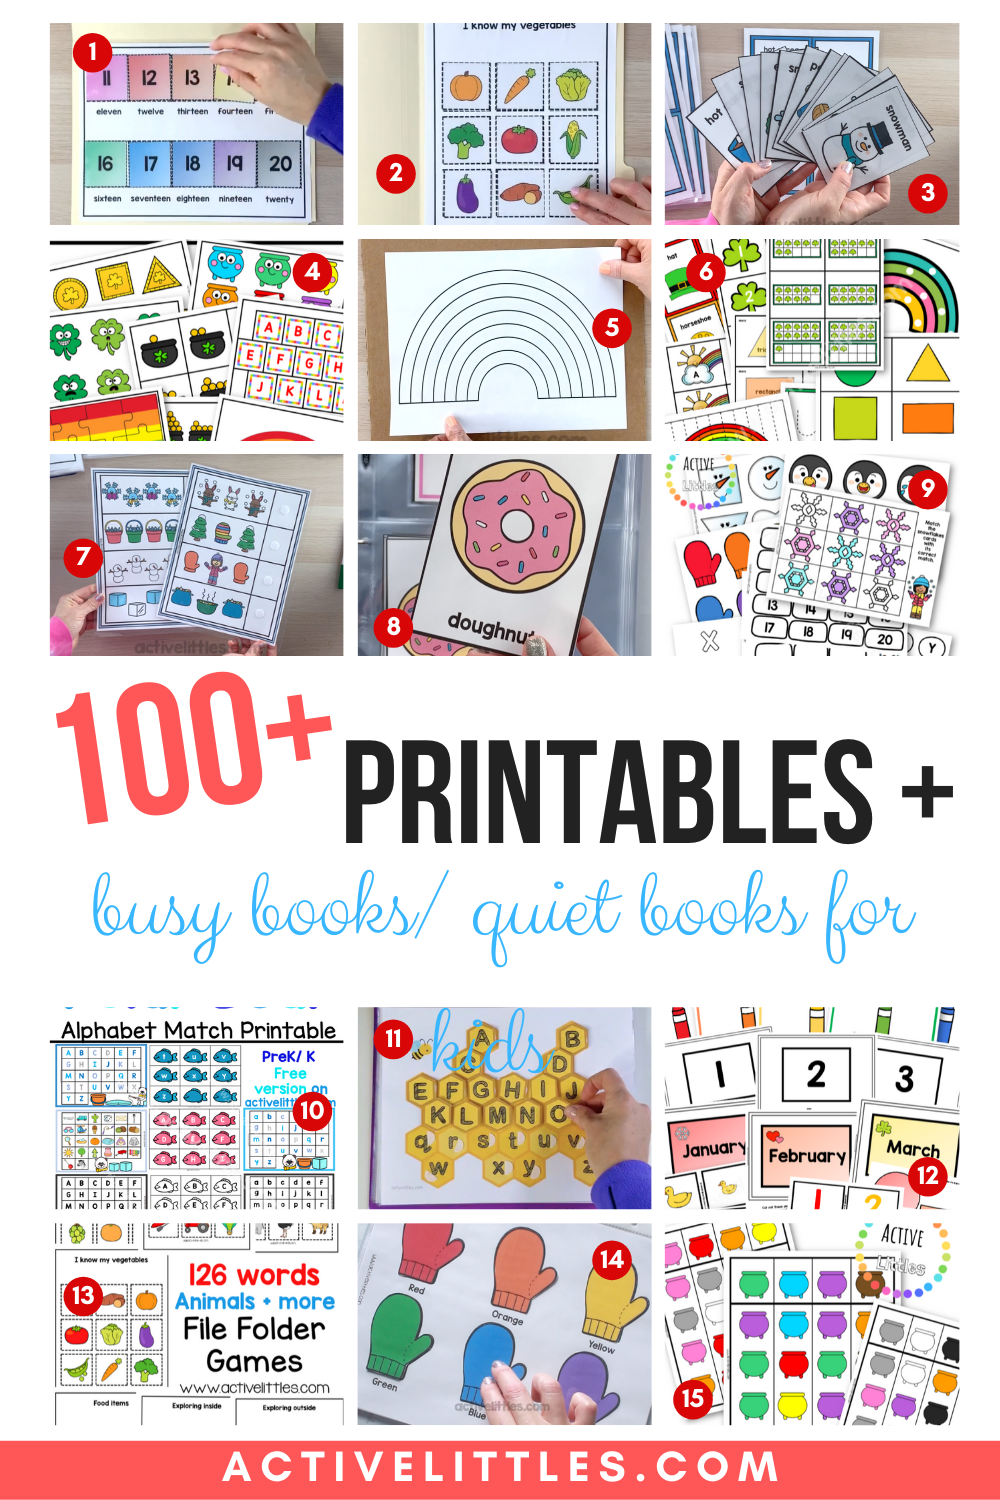 Over 100 printables, busy books and quiet books for kids